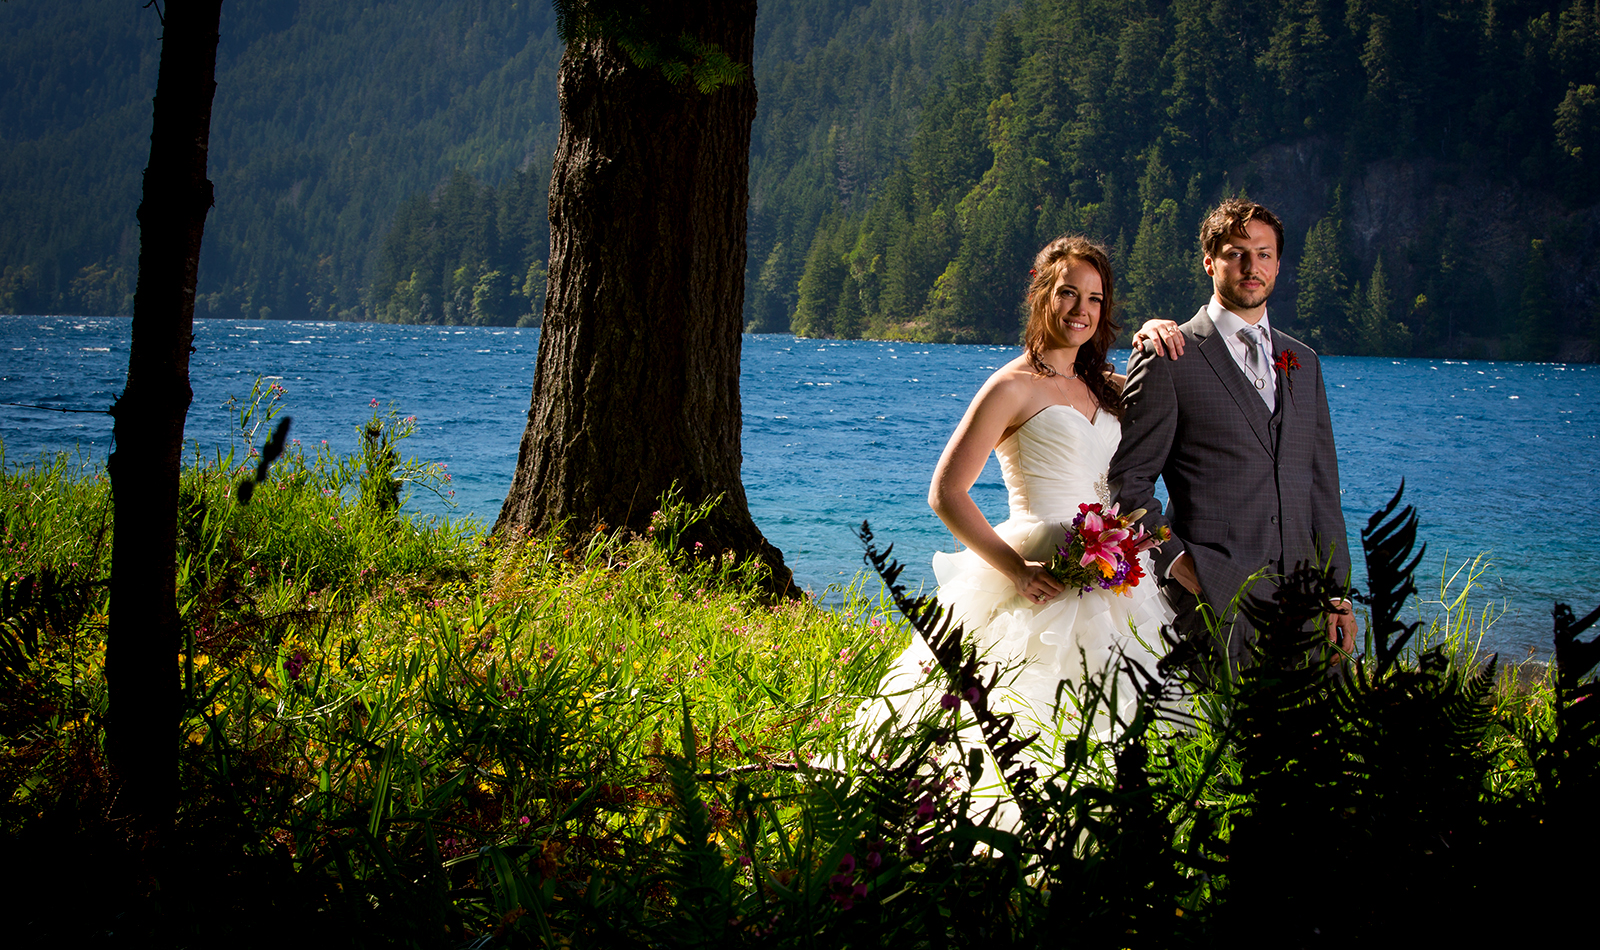 The wedding of Genevieve & Andrew at Lake Crescent Lodge on Wednesday July 17, 2013. (Photo by Scott Eklund /Red Box Pictures)